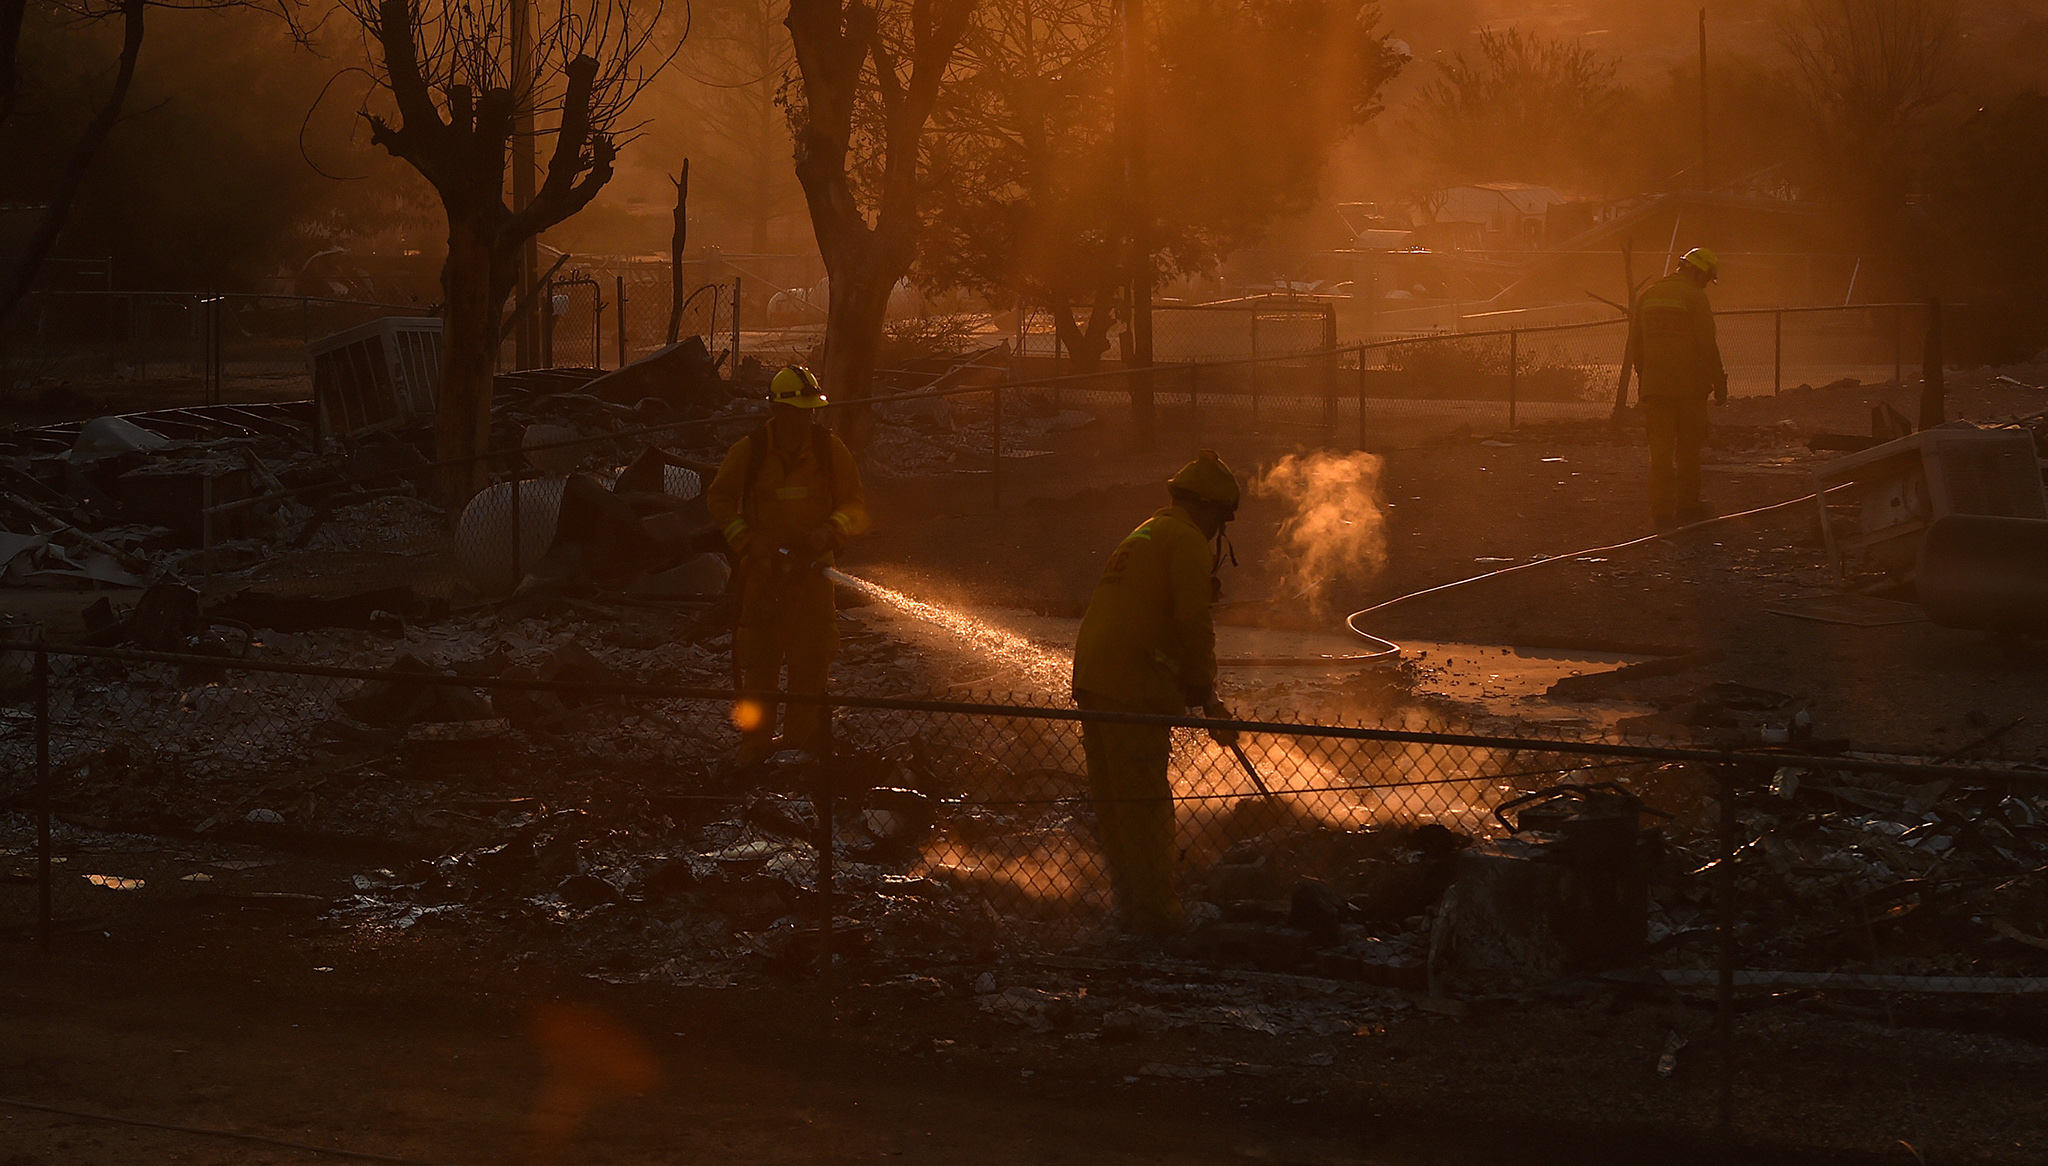 Firefighters mop-up a hot spot  at a residence levelled by the Erskine Fire in South Lake, California, USA